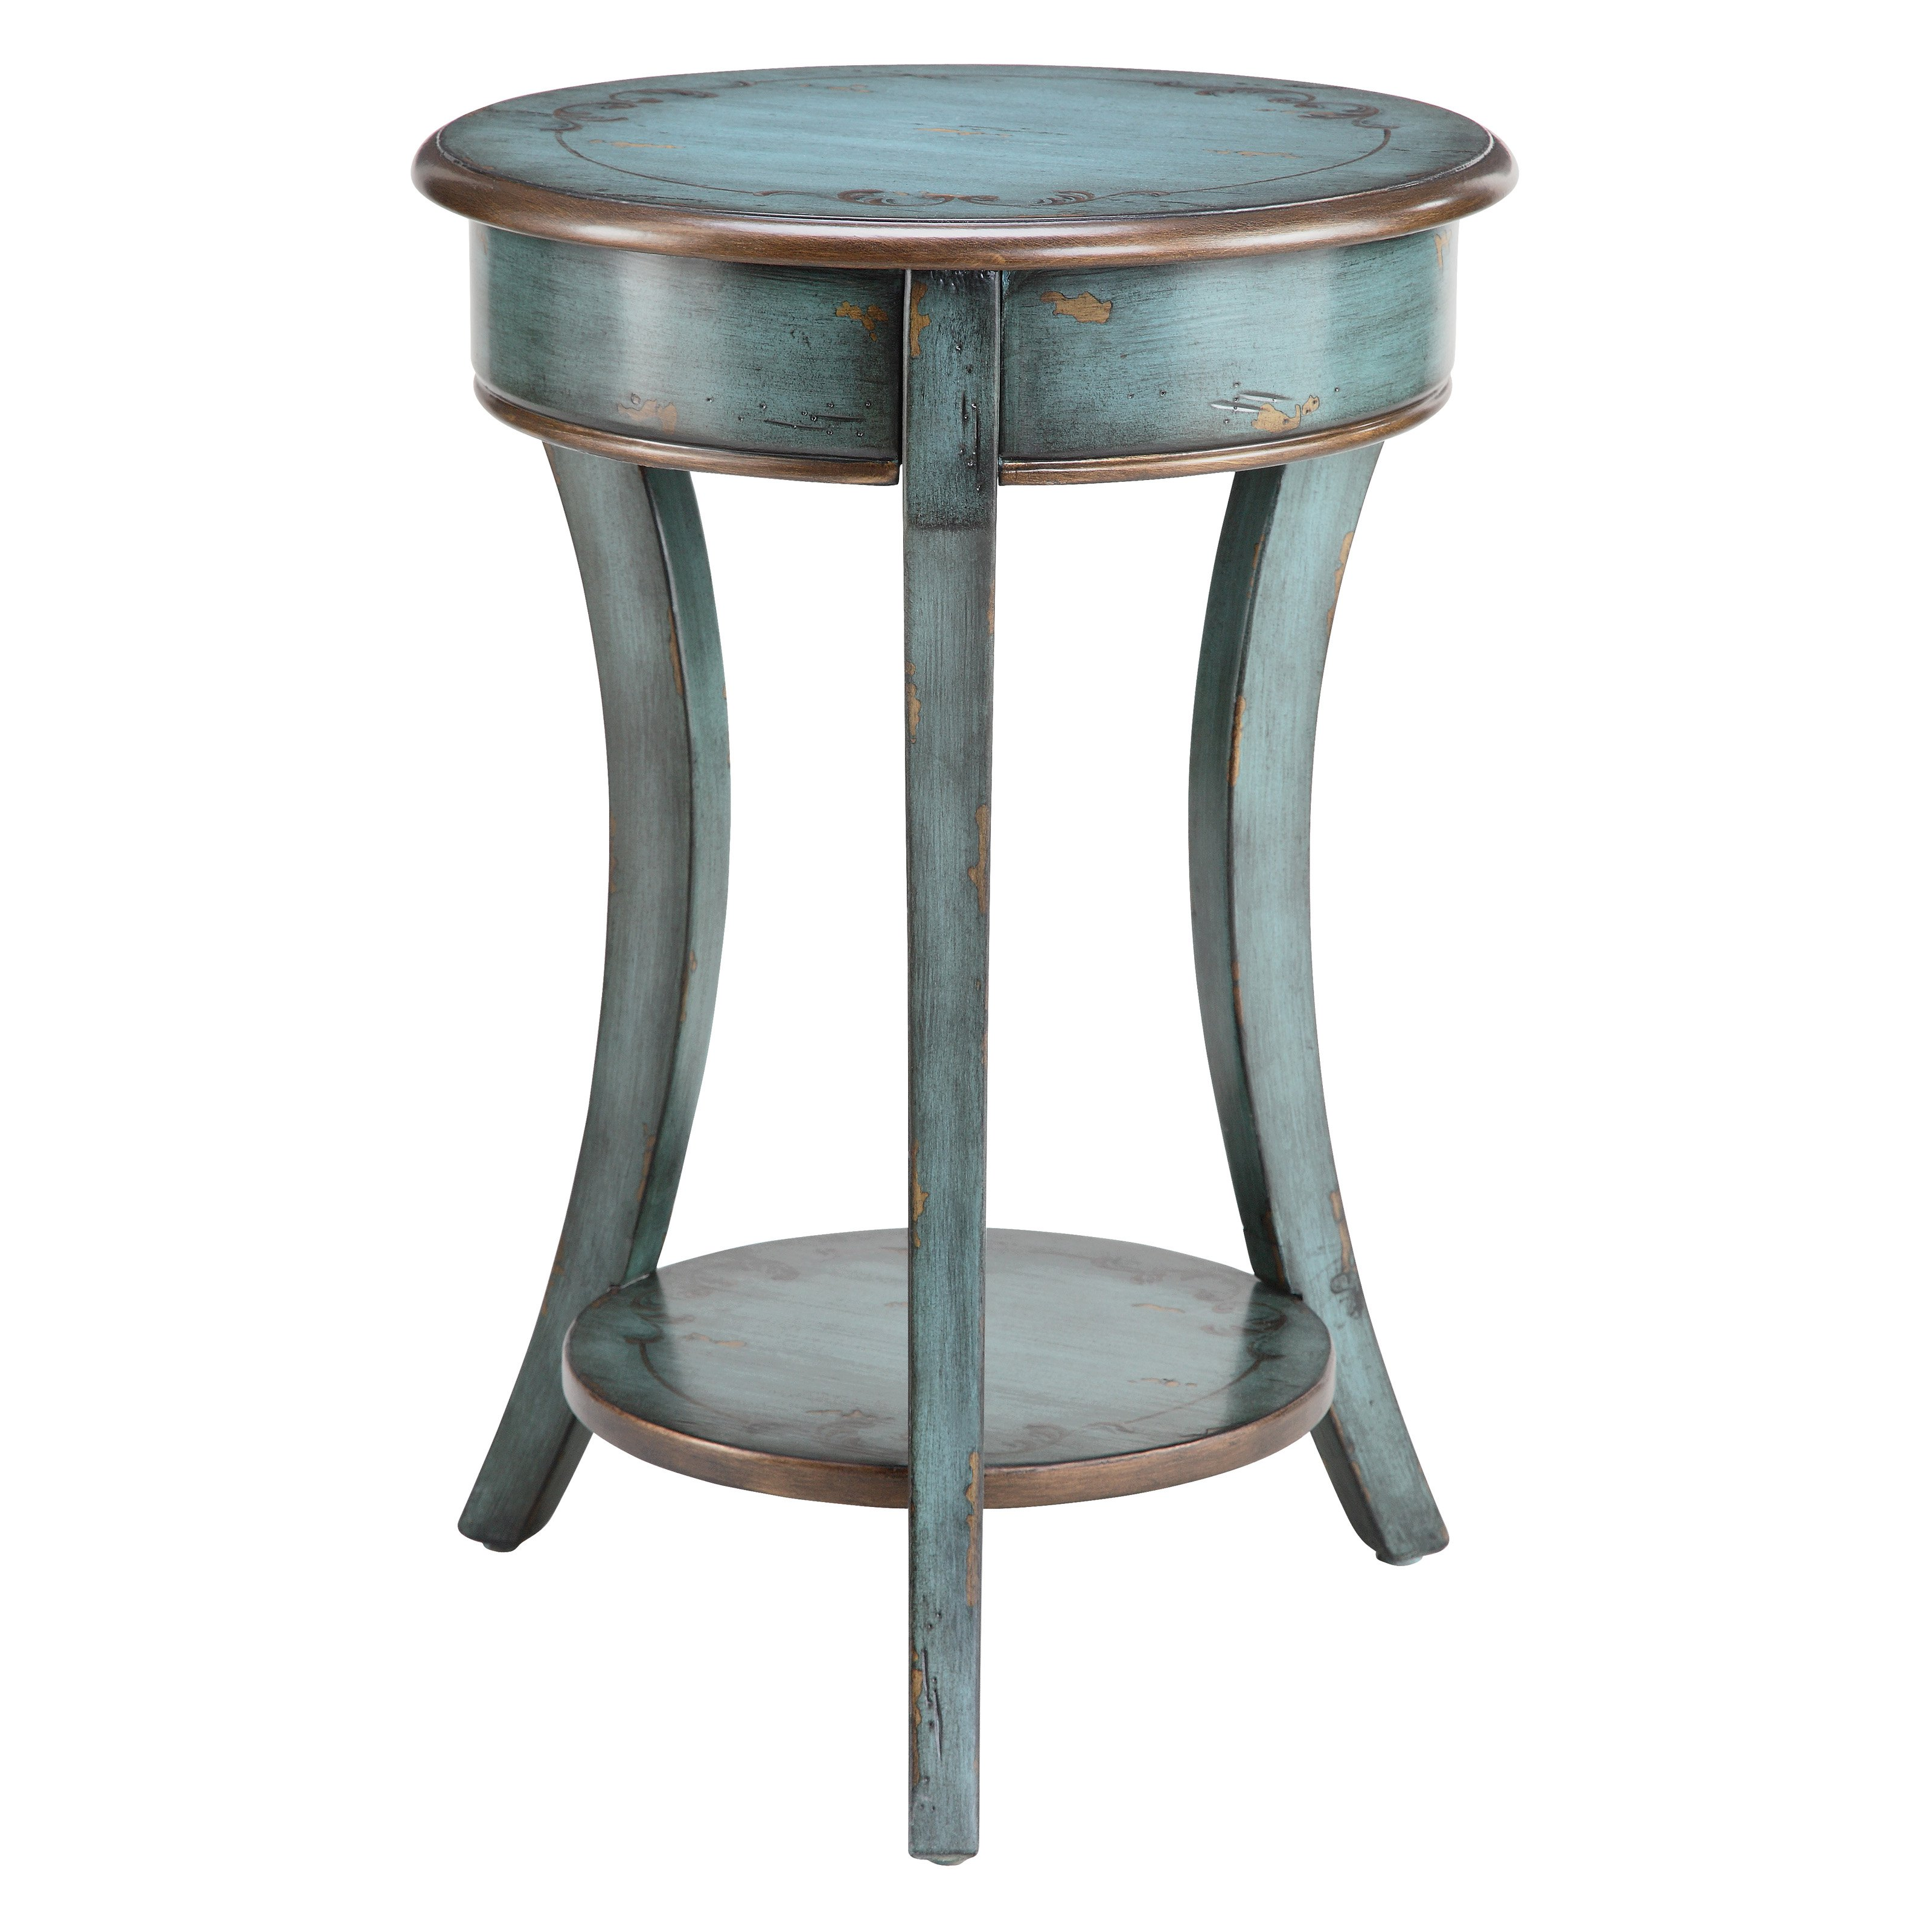 stein world freya accent table end tables ashley distressed blue small battery powered lights wood plans slim bedside light west elm mobile chandelier mirrored furniture toronto